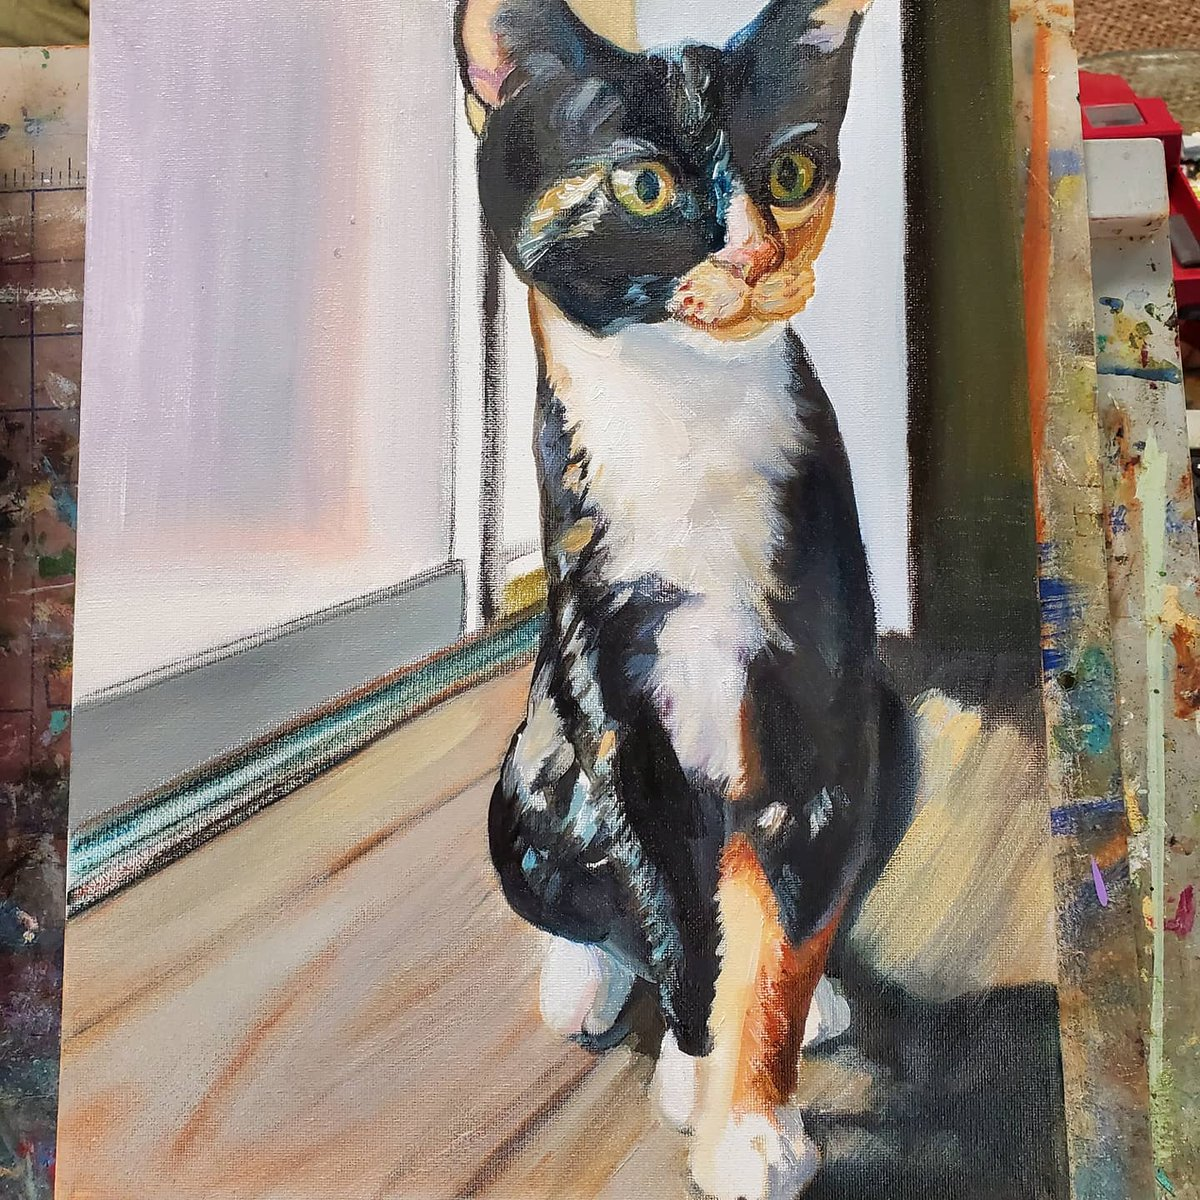 Attention Cat Lovers! Your Cat is a Work of Art! Let me Capture that in an Oil Painting for you!  #petportrait #petportraits #petportraitartist #paintmycat #lovecats #lovemycat #catsrule #cats #catartist #petpainter